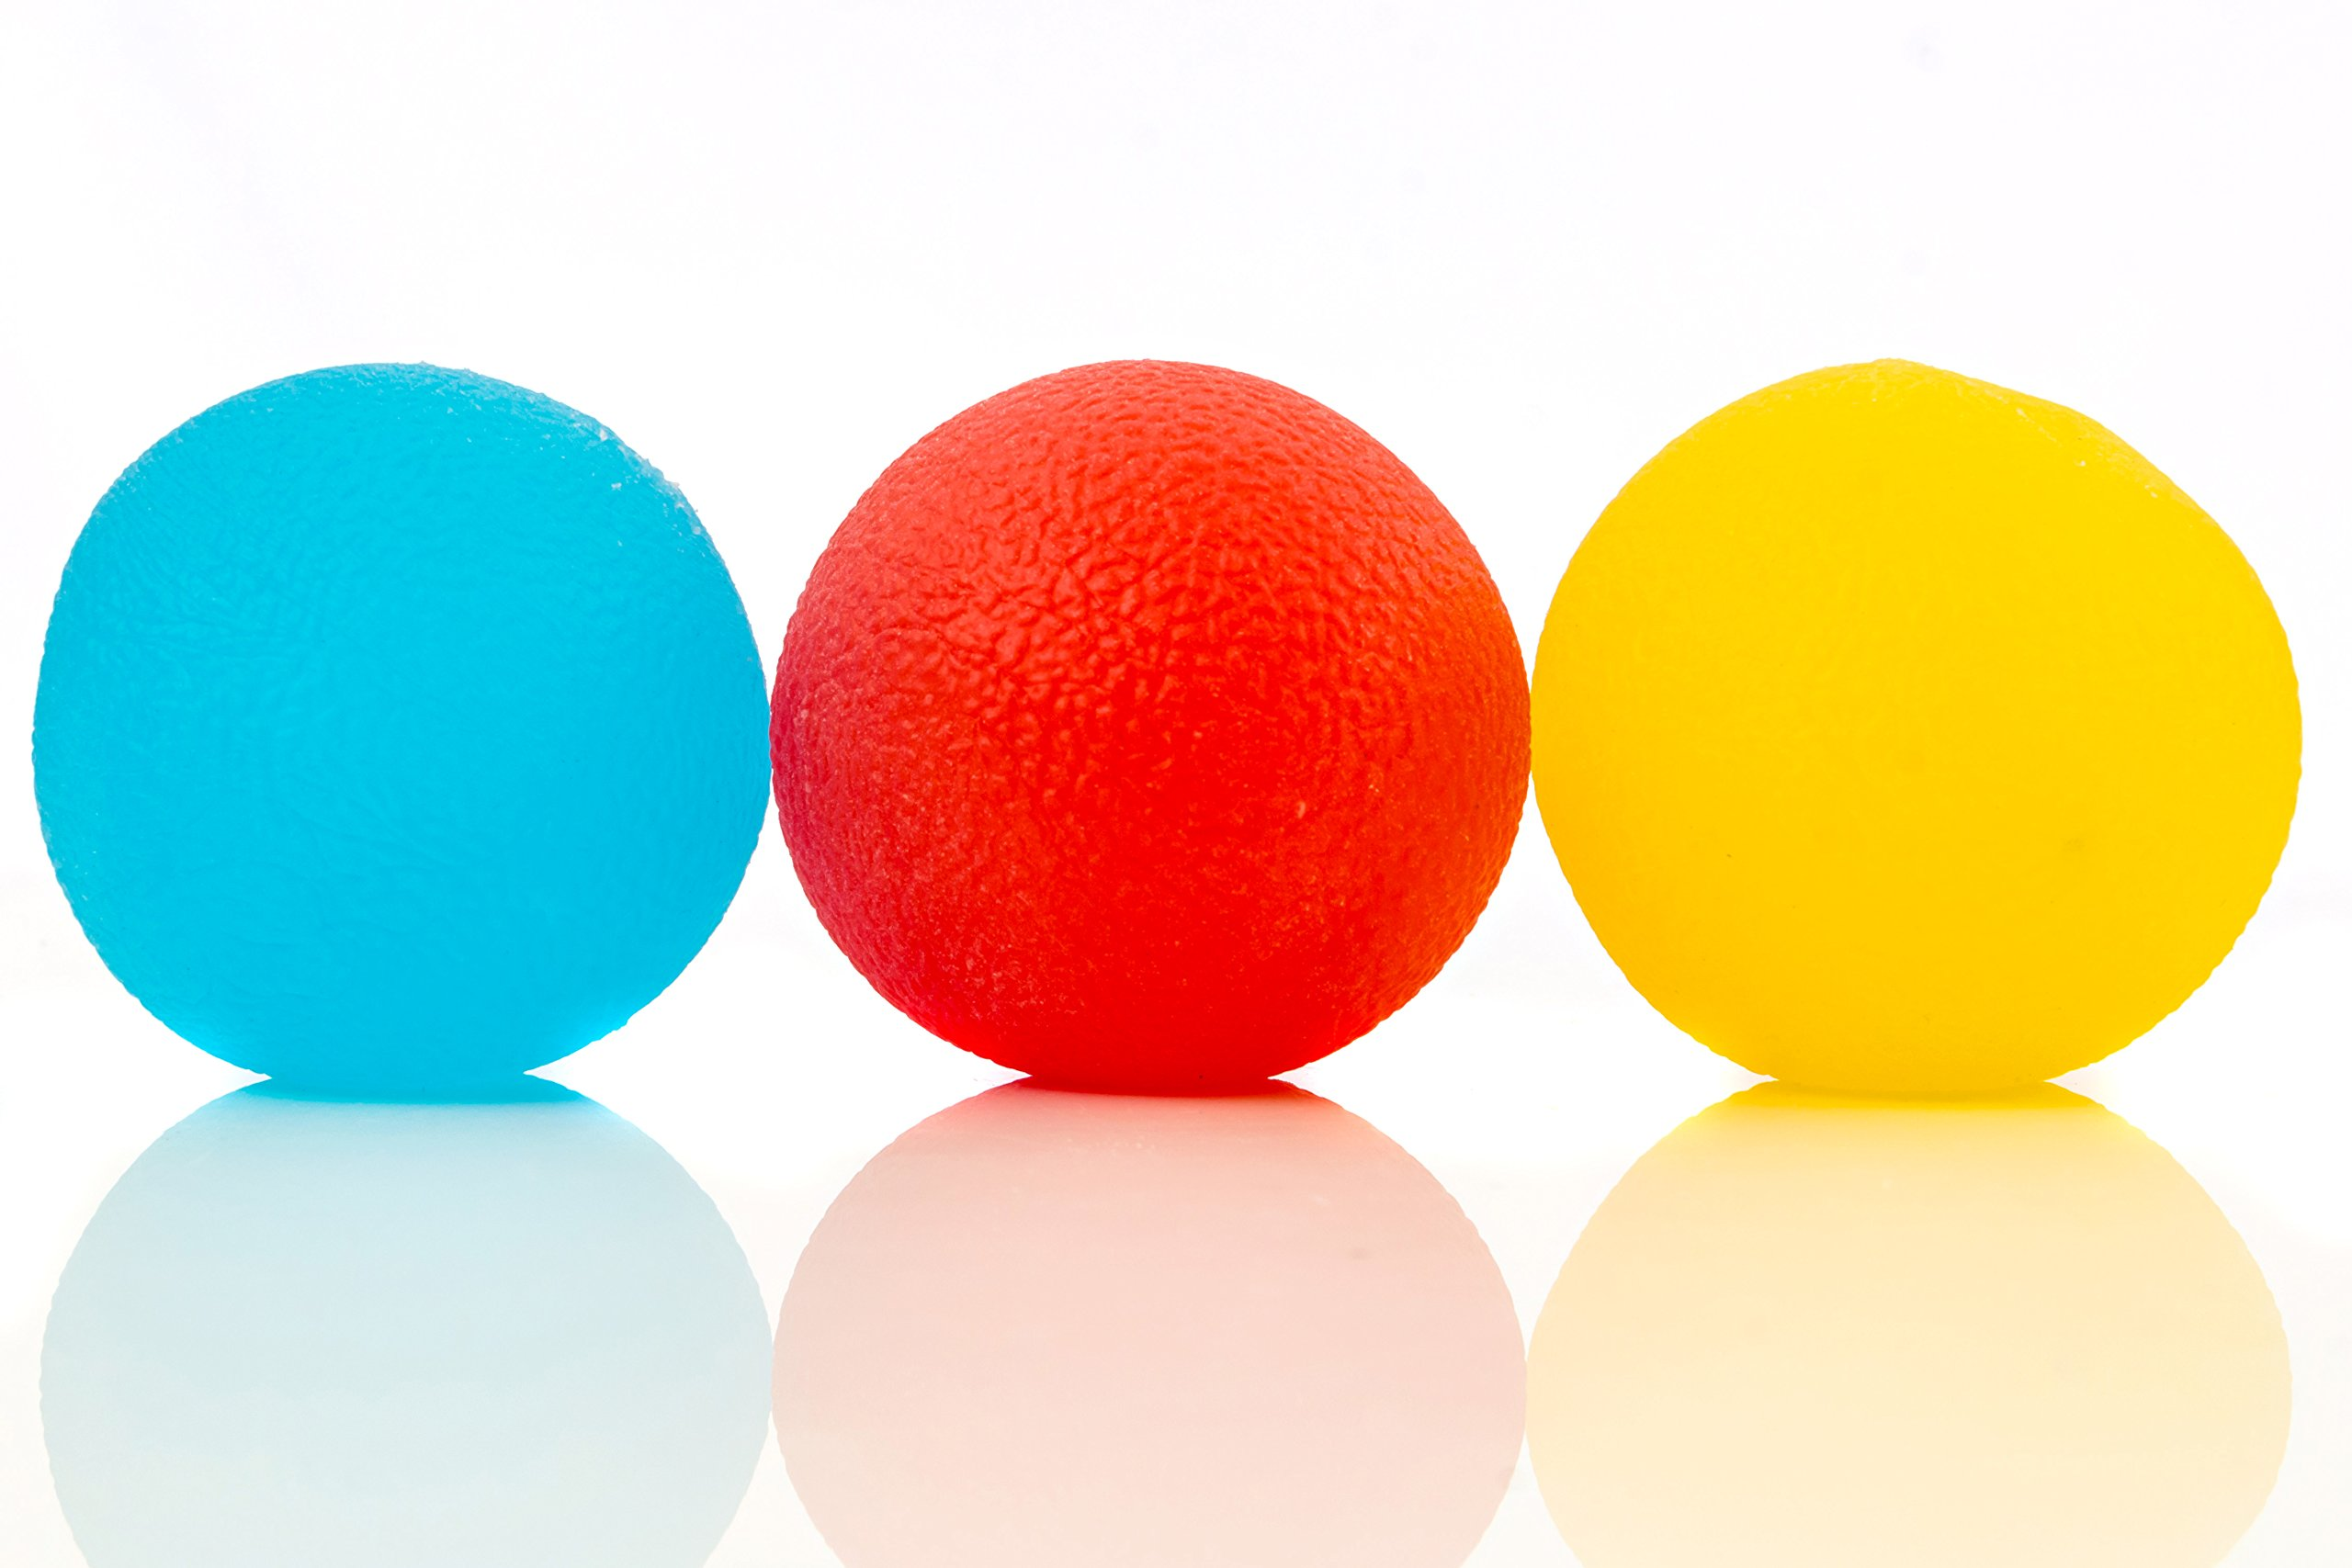 Stress Relief Balls (3-pack) - Tear-Resistant, Non-toxic, BPA/Phthalate/Latex-Free (Colors as Shown) - Perfect for Kids and Adults - Squishy Relief Toys for Anxiety, ADHD, Autism and More - By IMPRESA by Impresa Products